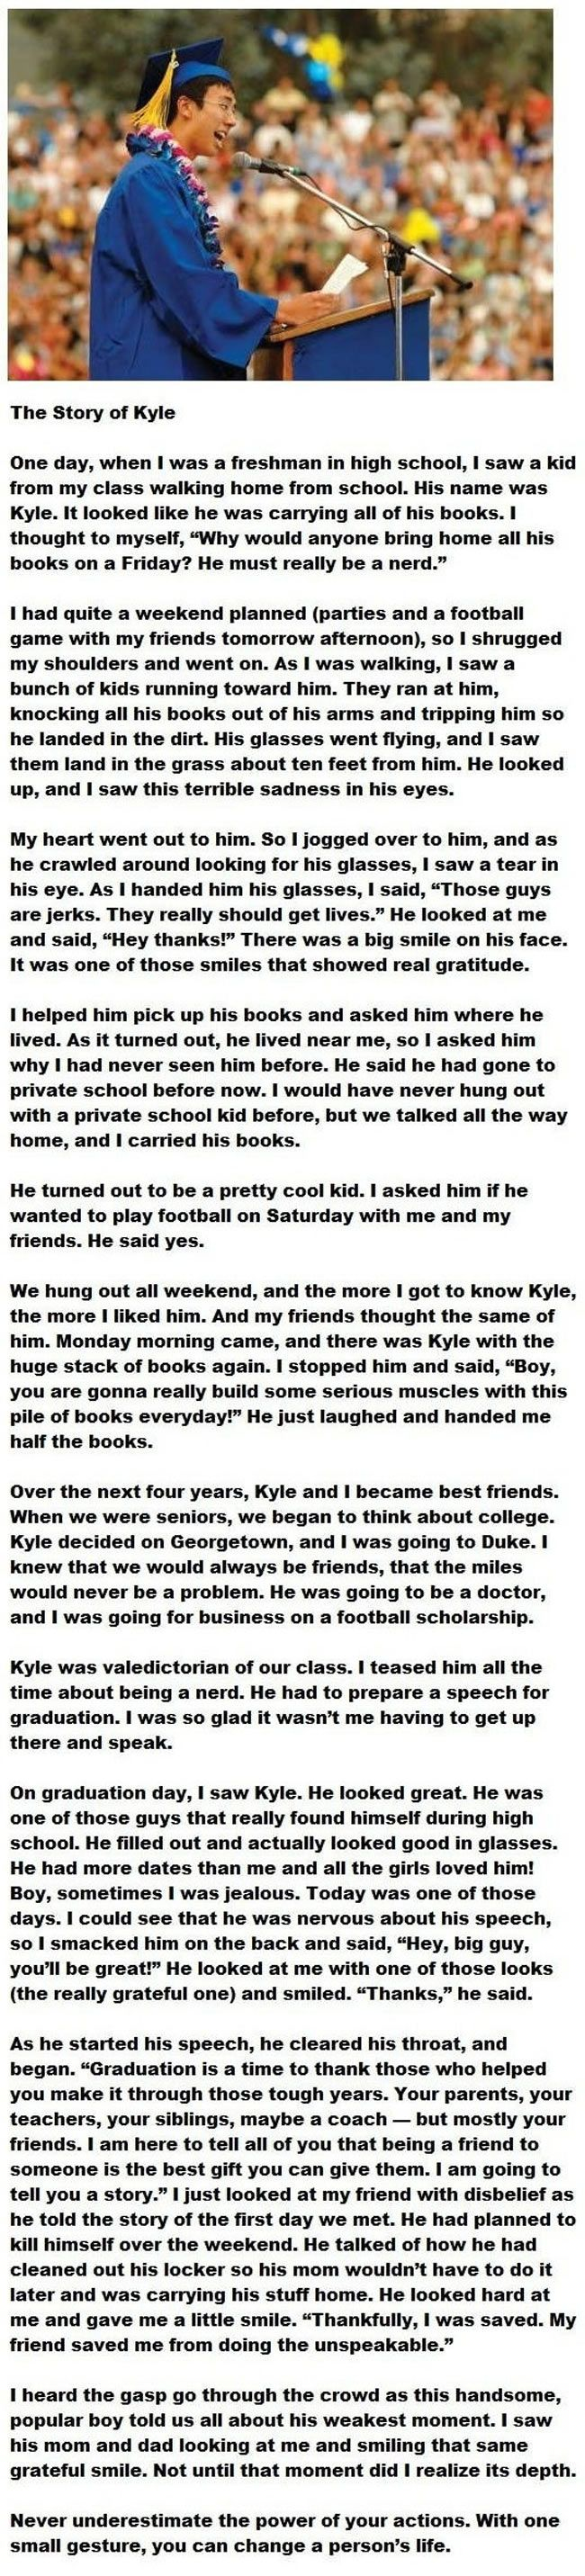 Such a sweet story about friendship...crying!